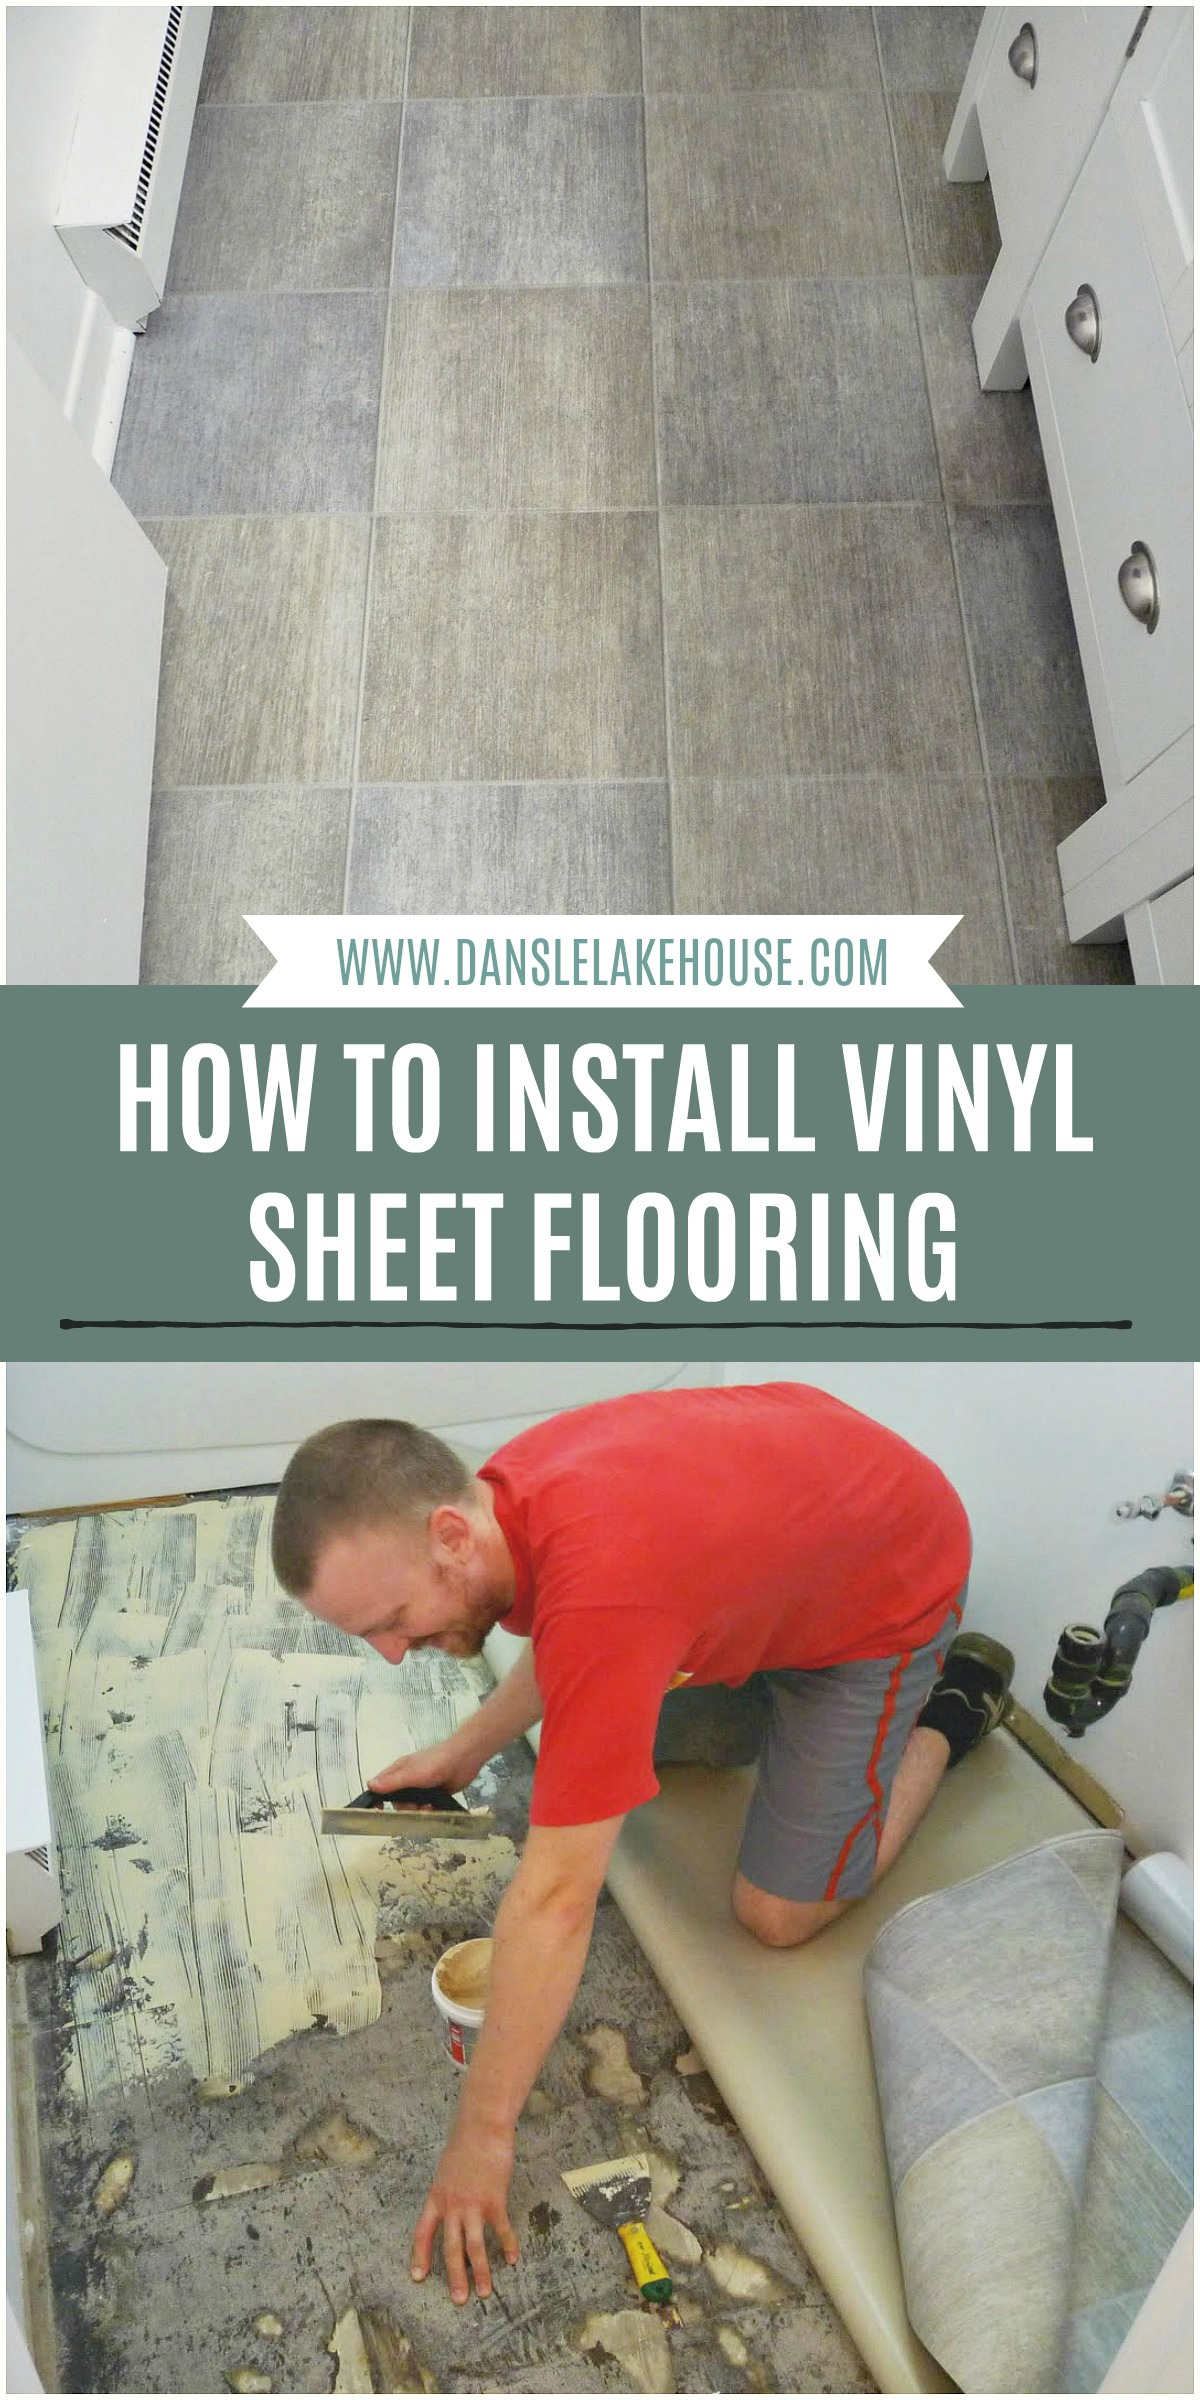 How to Install Vinyl Sheet Flooring